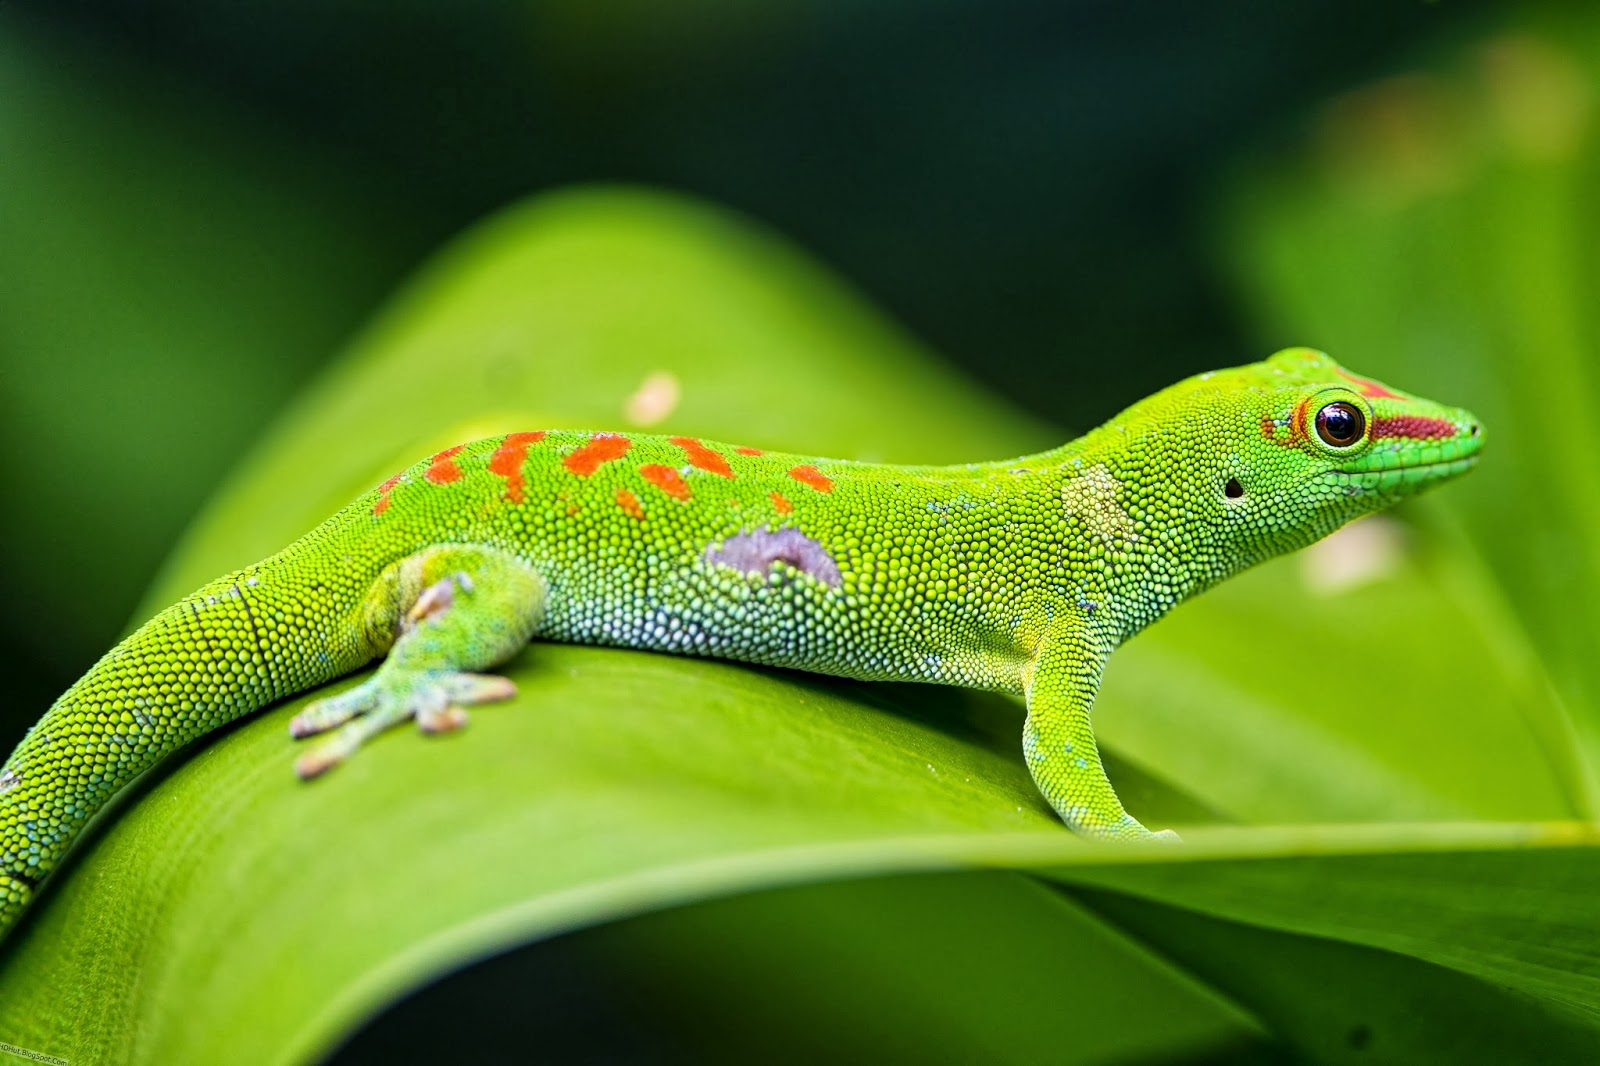 http://hdhut.blogspot.com/2014/03/top-25-most-incredible-lizard.html